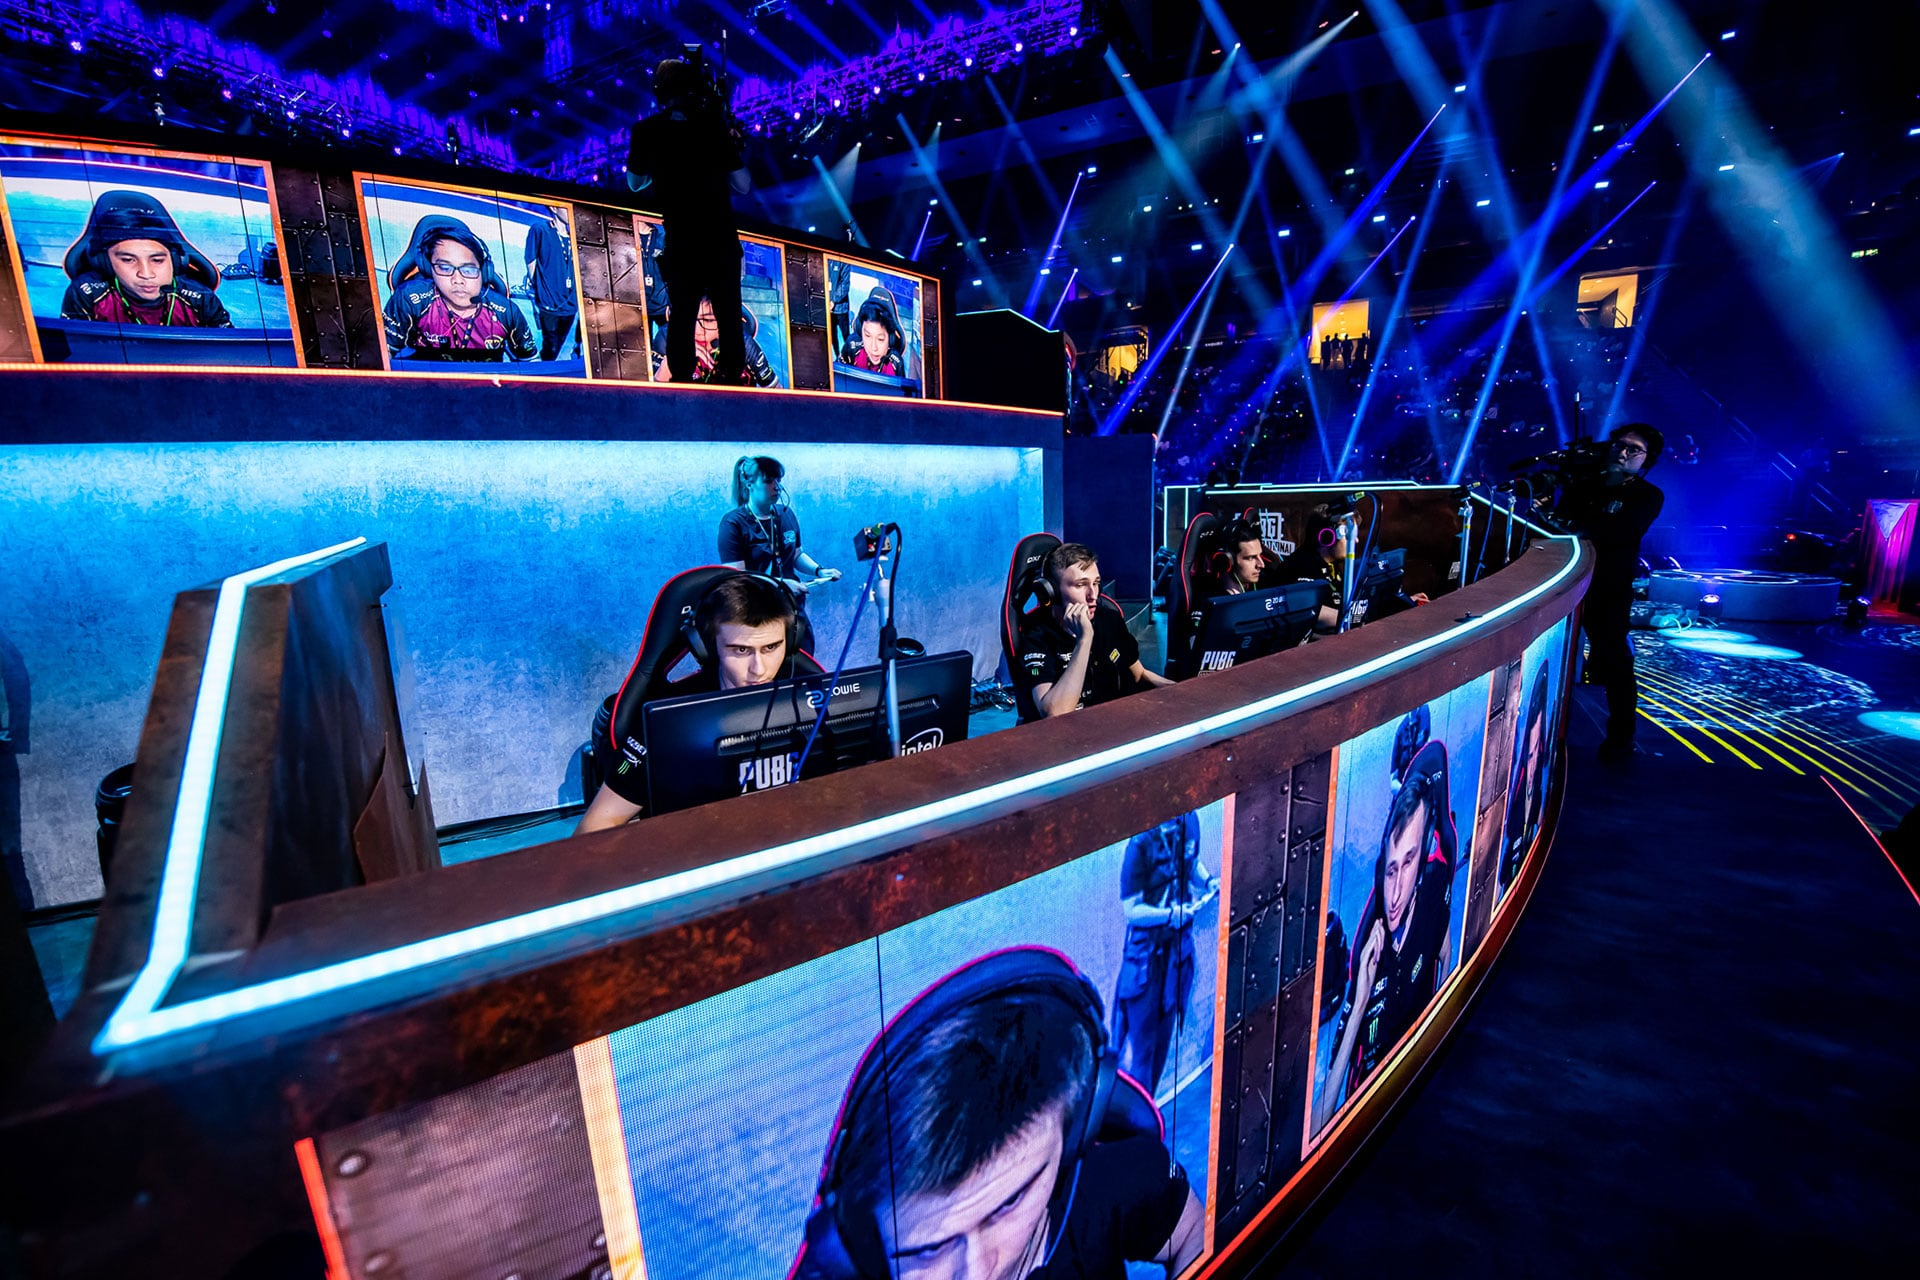 Live Legends - IHSE plays Key Role at Esports Gaming event